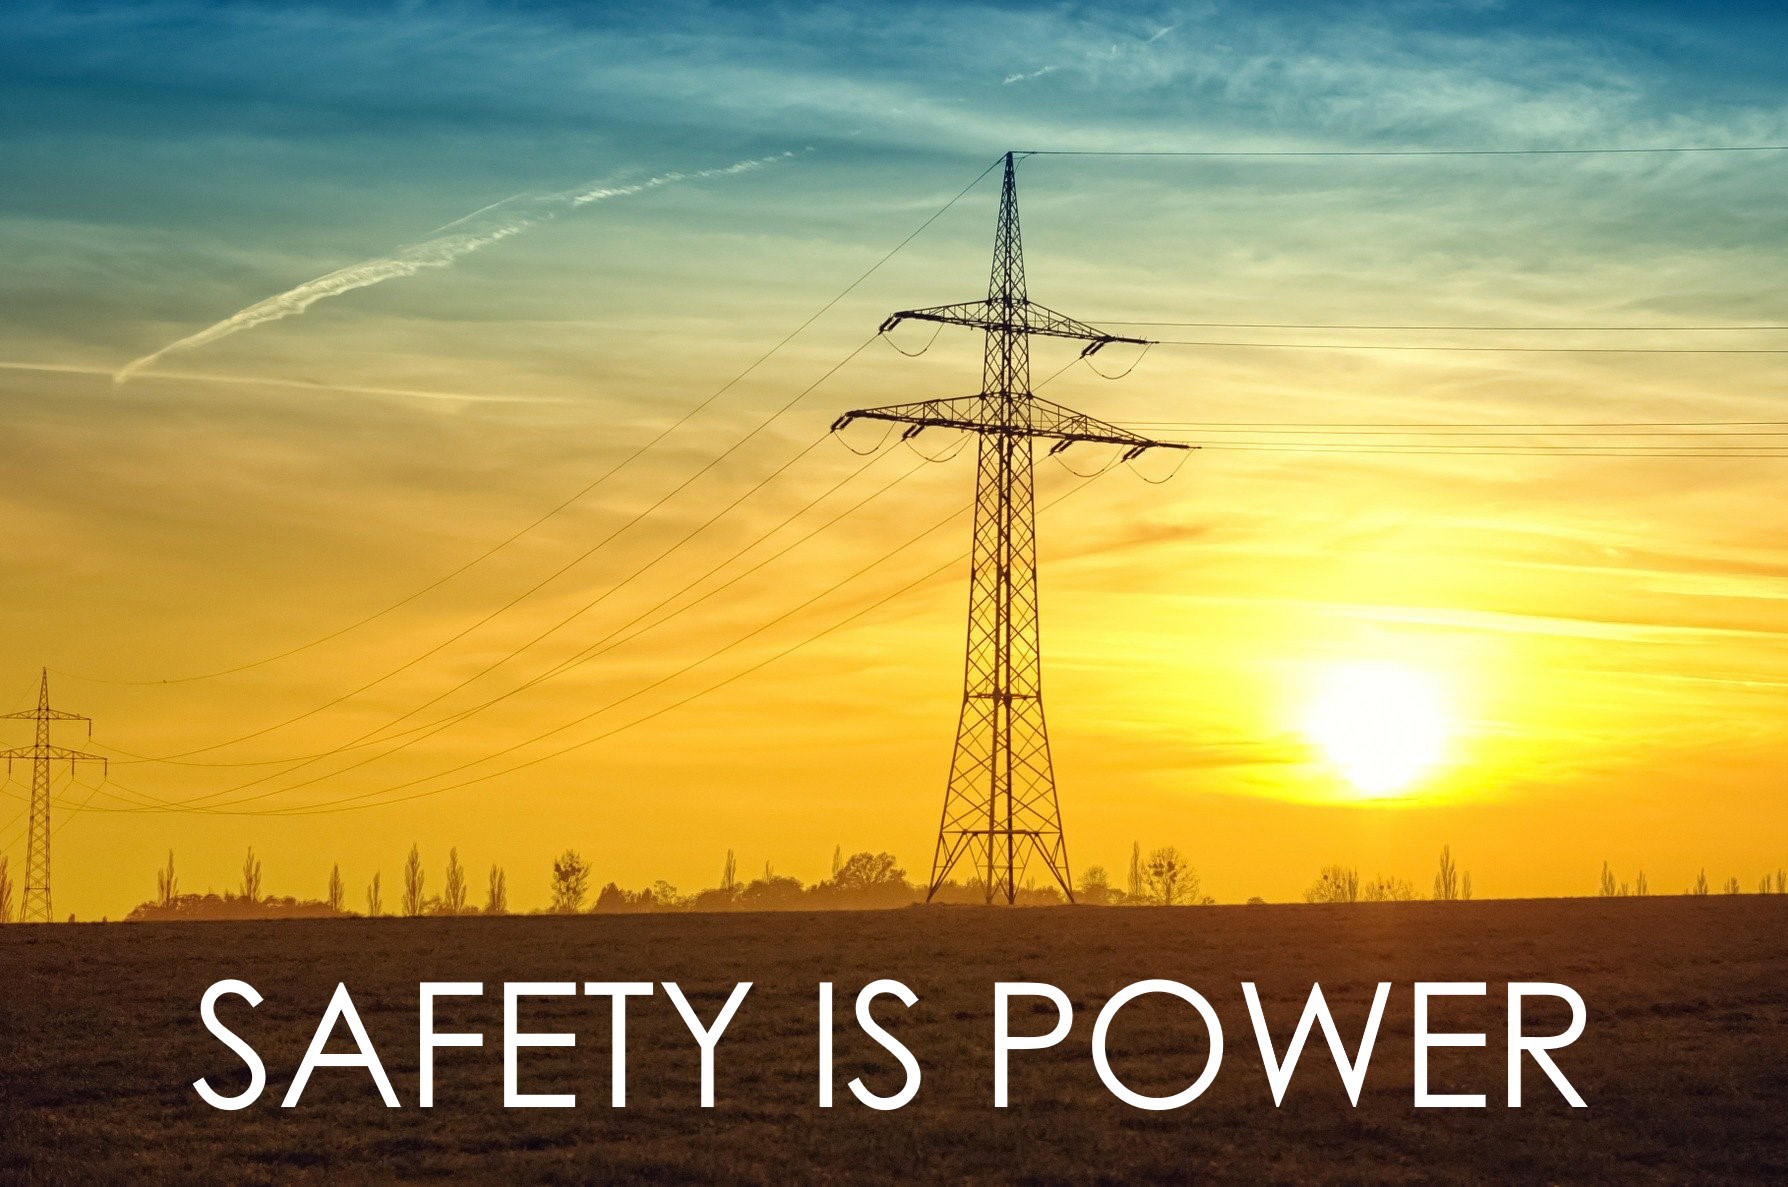 Safety is Power - Image